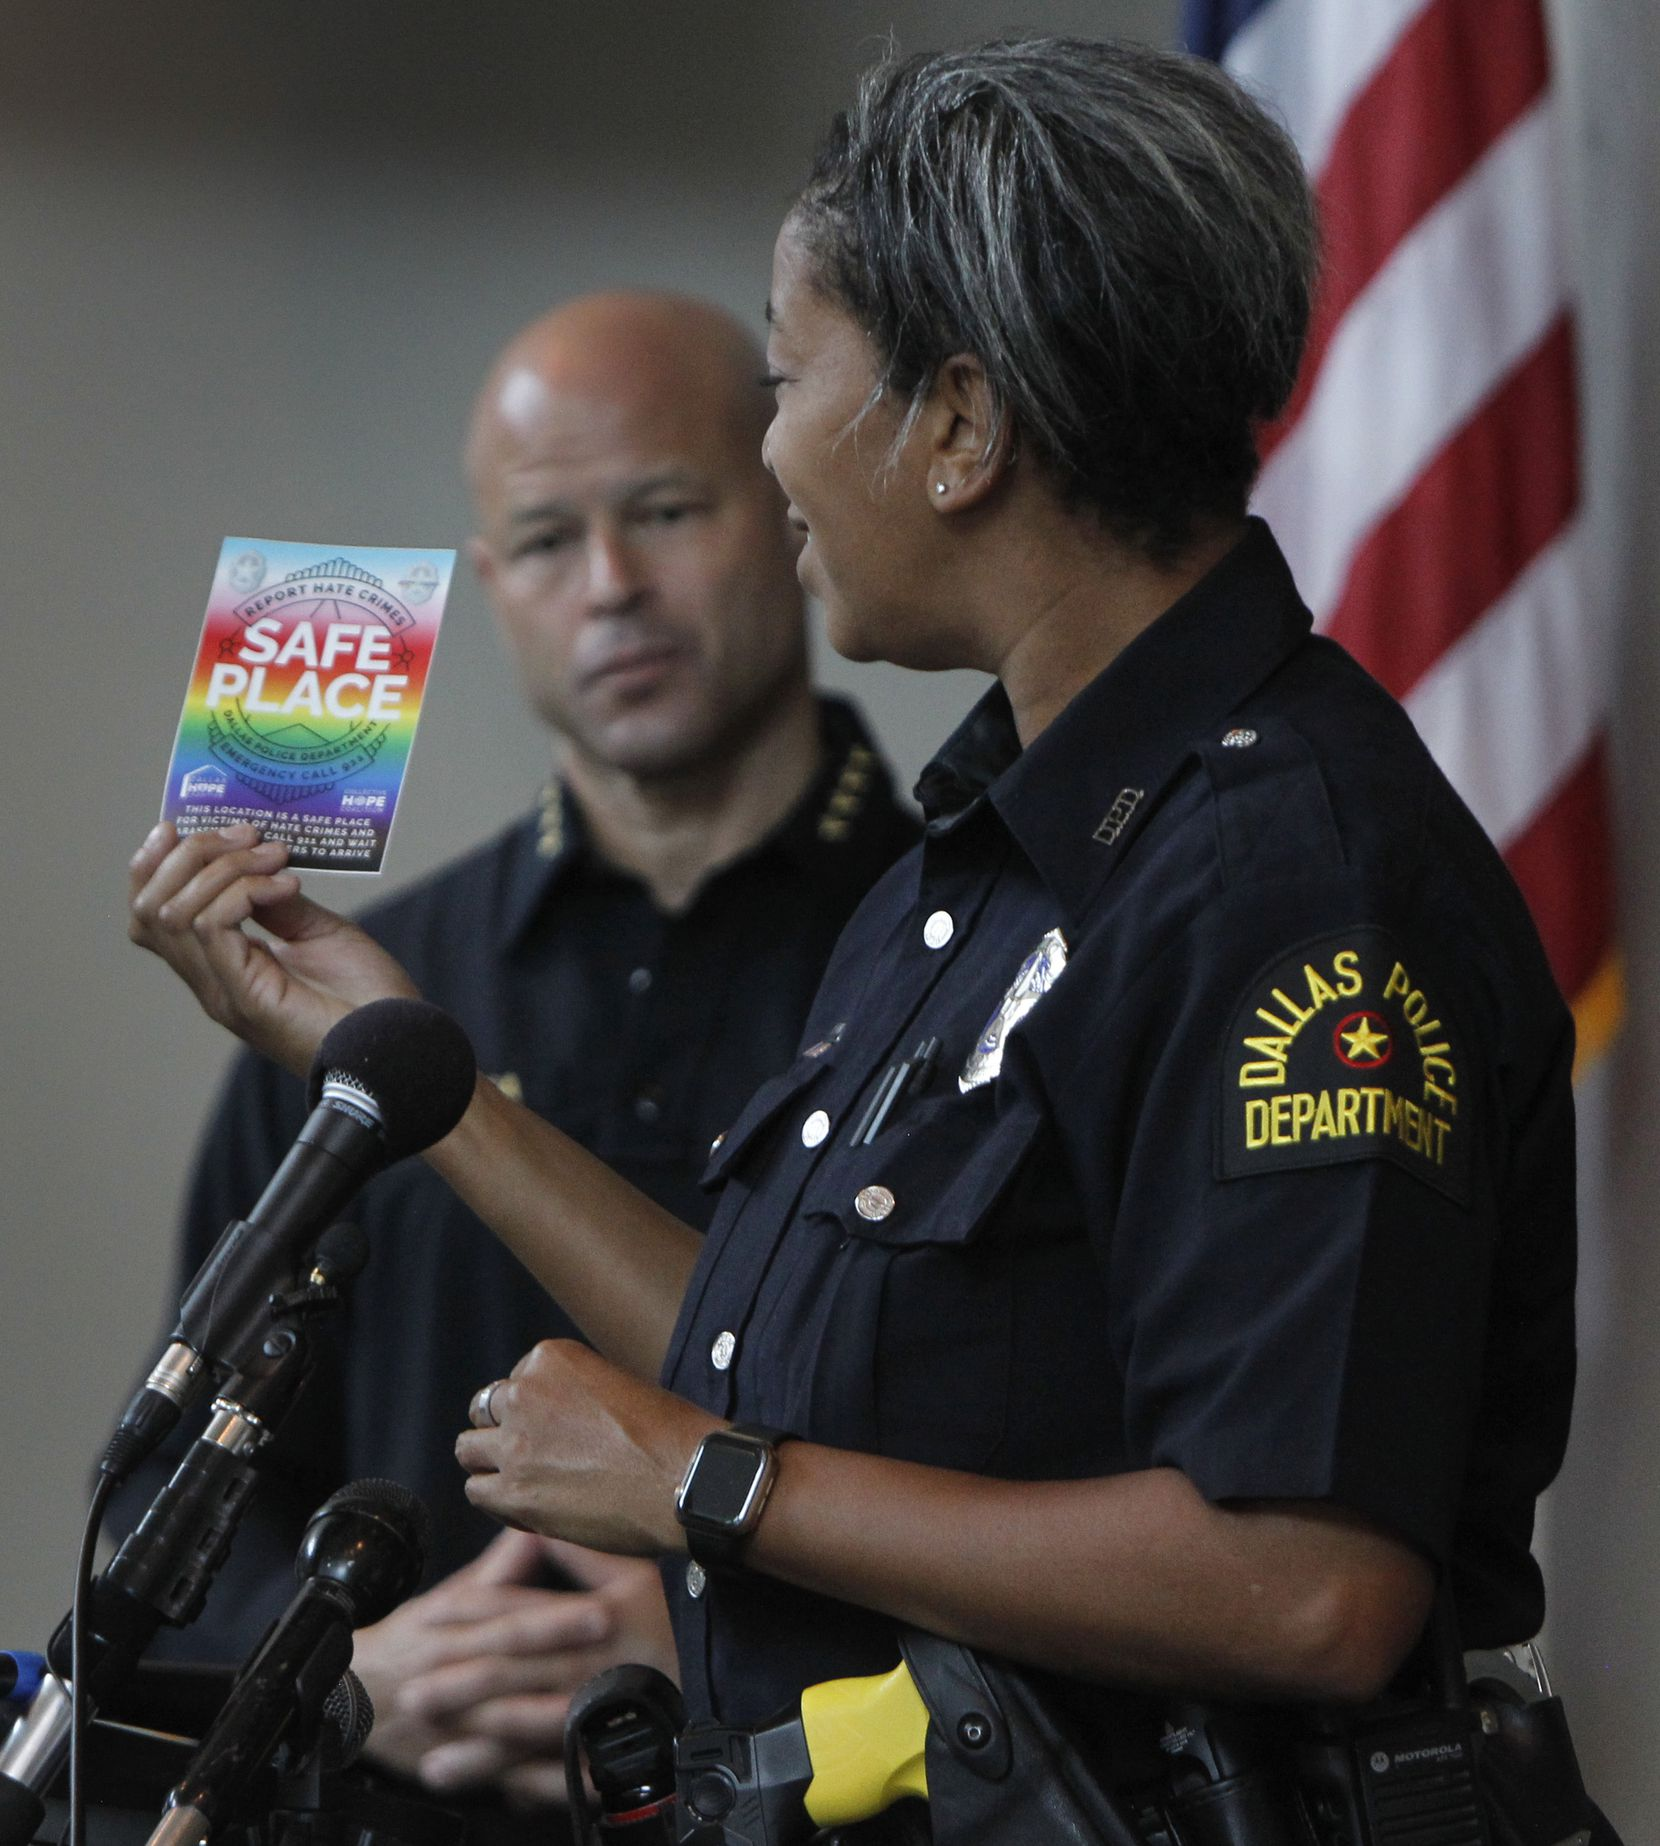 Dallas Police Department's new LGBTQ+ liaison, officer Megan Thomas, displays the Safe Place business designations for potential targets of hate crimes until police can arrive. Police Chief Eddie Garcia looks on in the background. The launch of the Safe Place Program was held at the Dallas police Department headquarters at 1400 Botham Jean Blvd. in Dallas on June 28, 2021. (Steve Hamm/ Special Contributor)